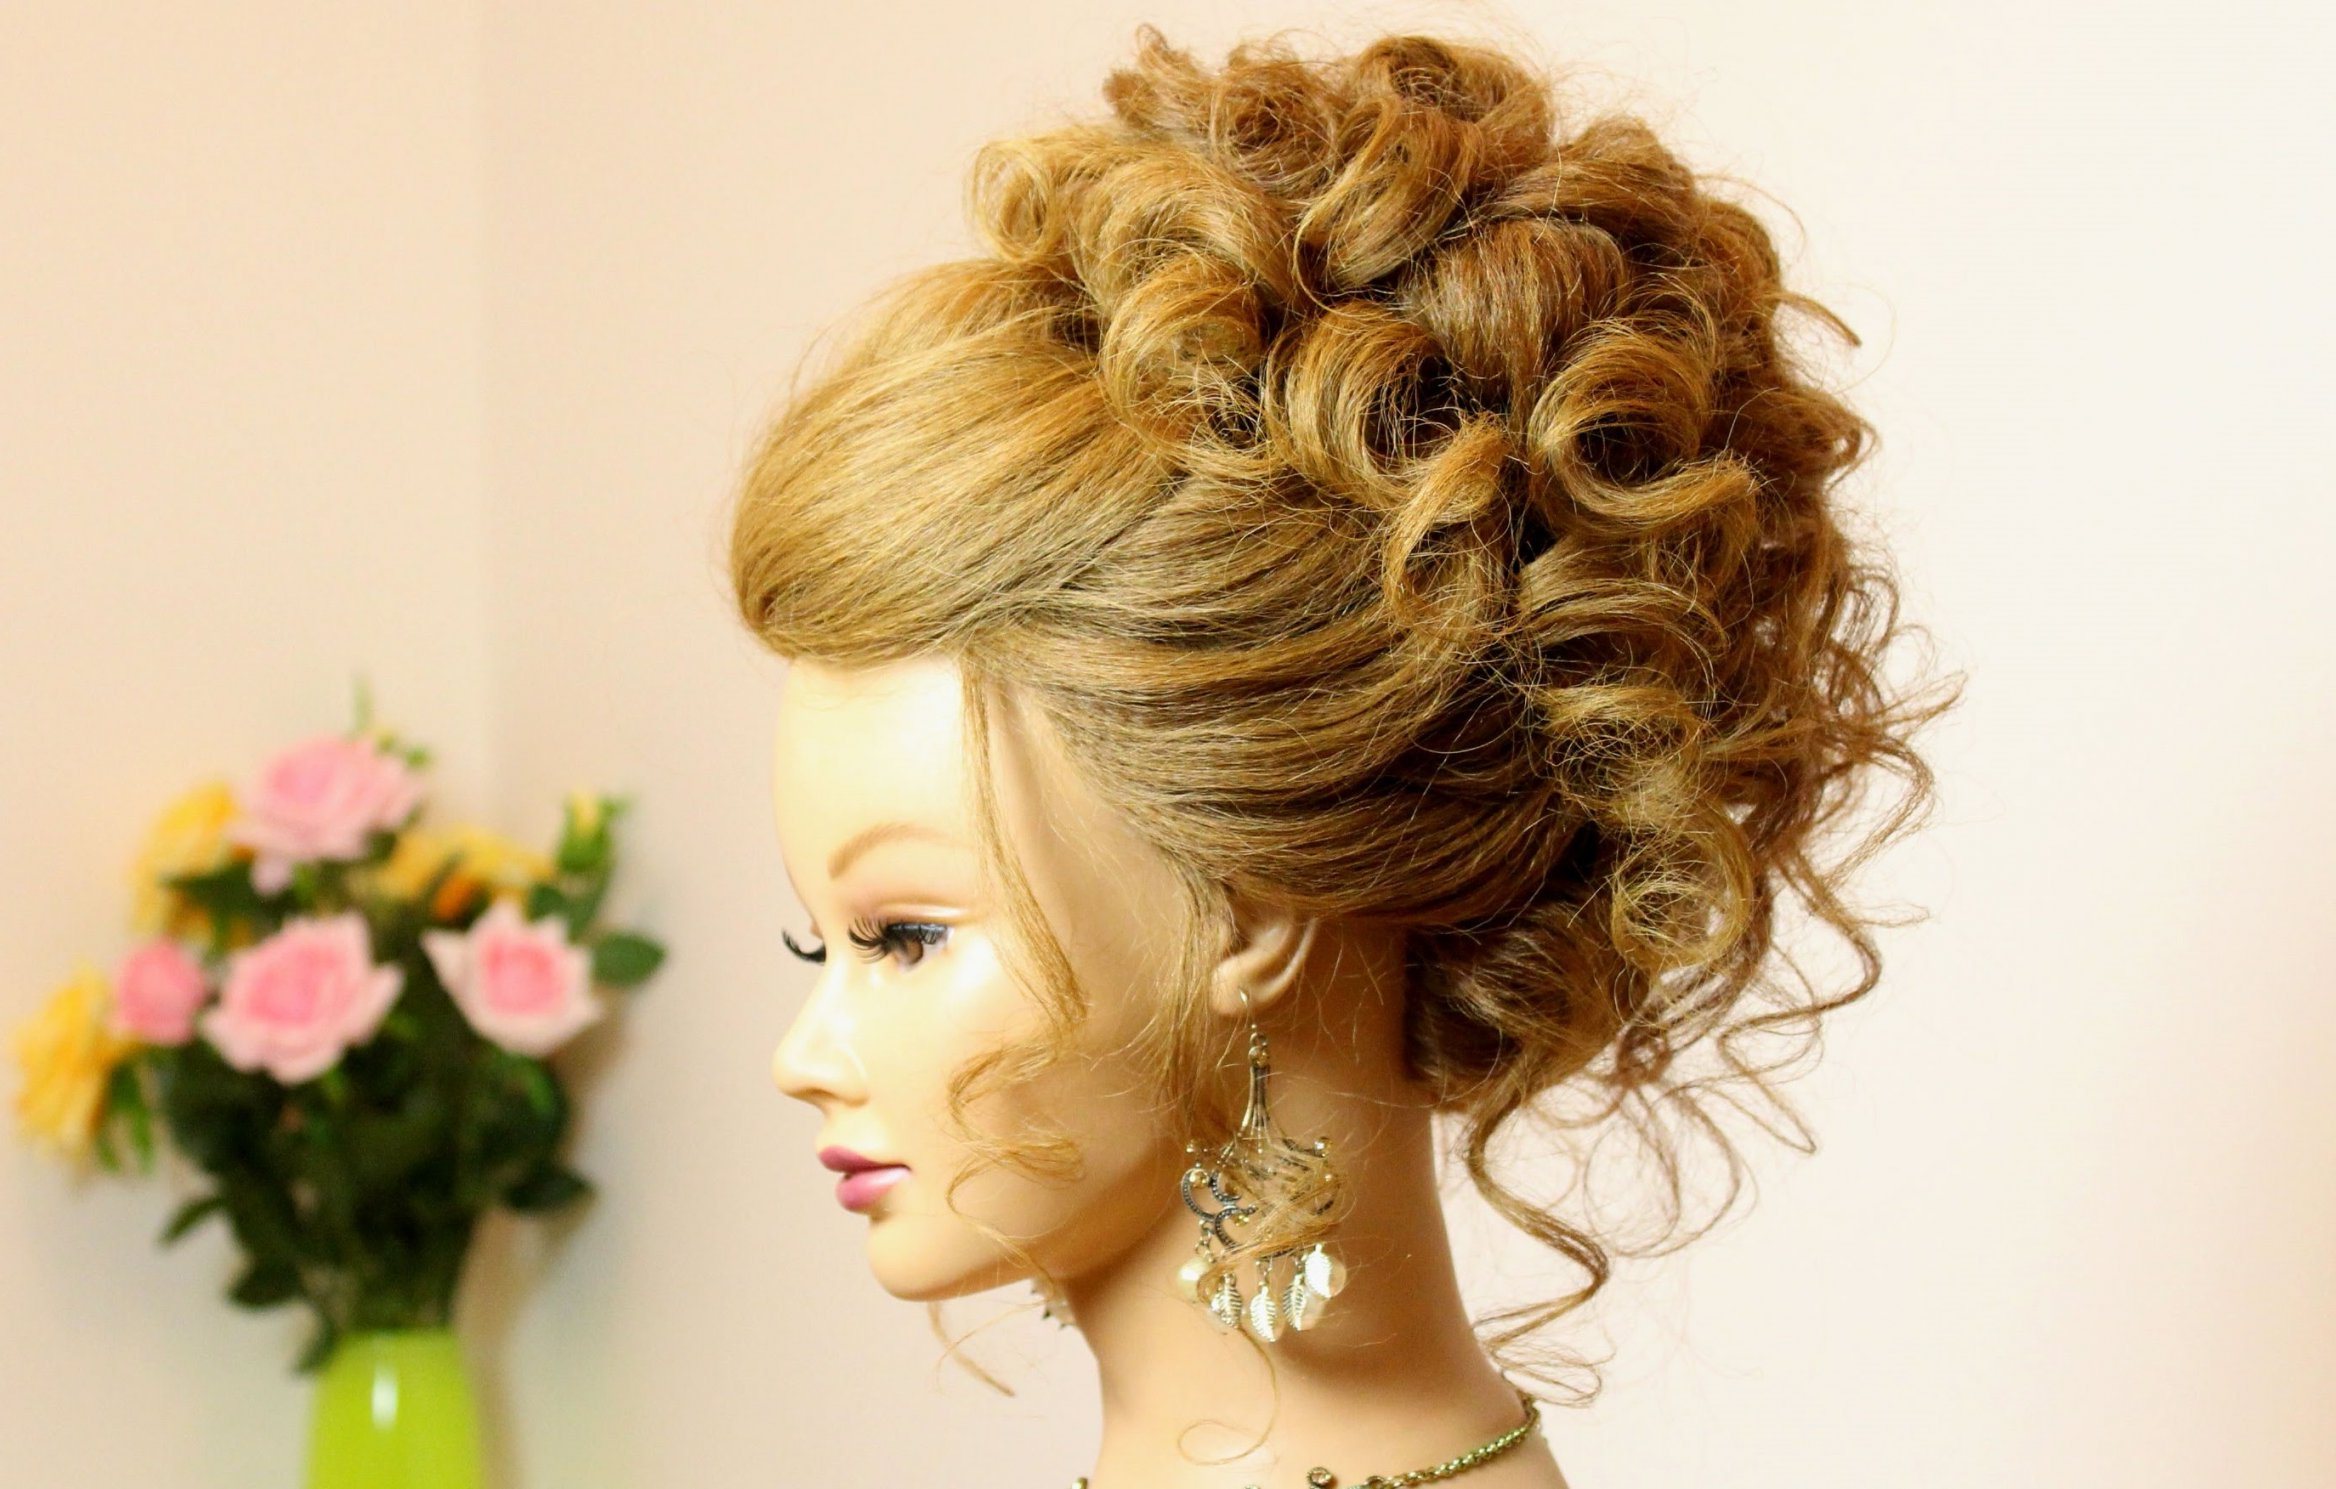 Most Current Curly Medium Hairstyles For Prom Pertaining To Curly Hairstyle For Long Medium Hair. Wedding Prom Updo (View 12 of 20)